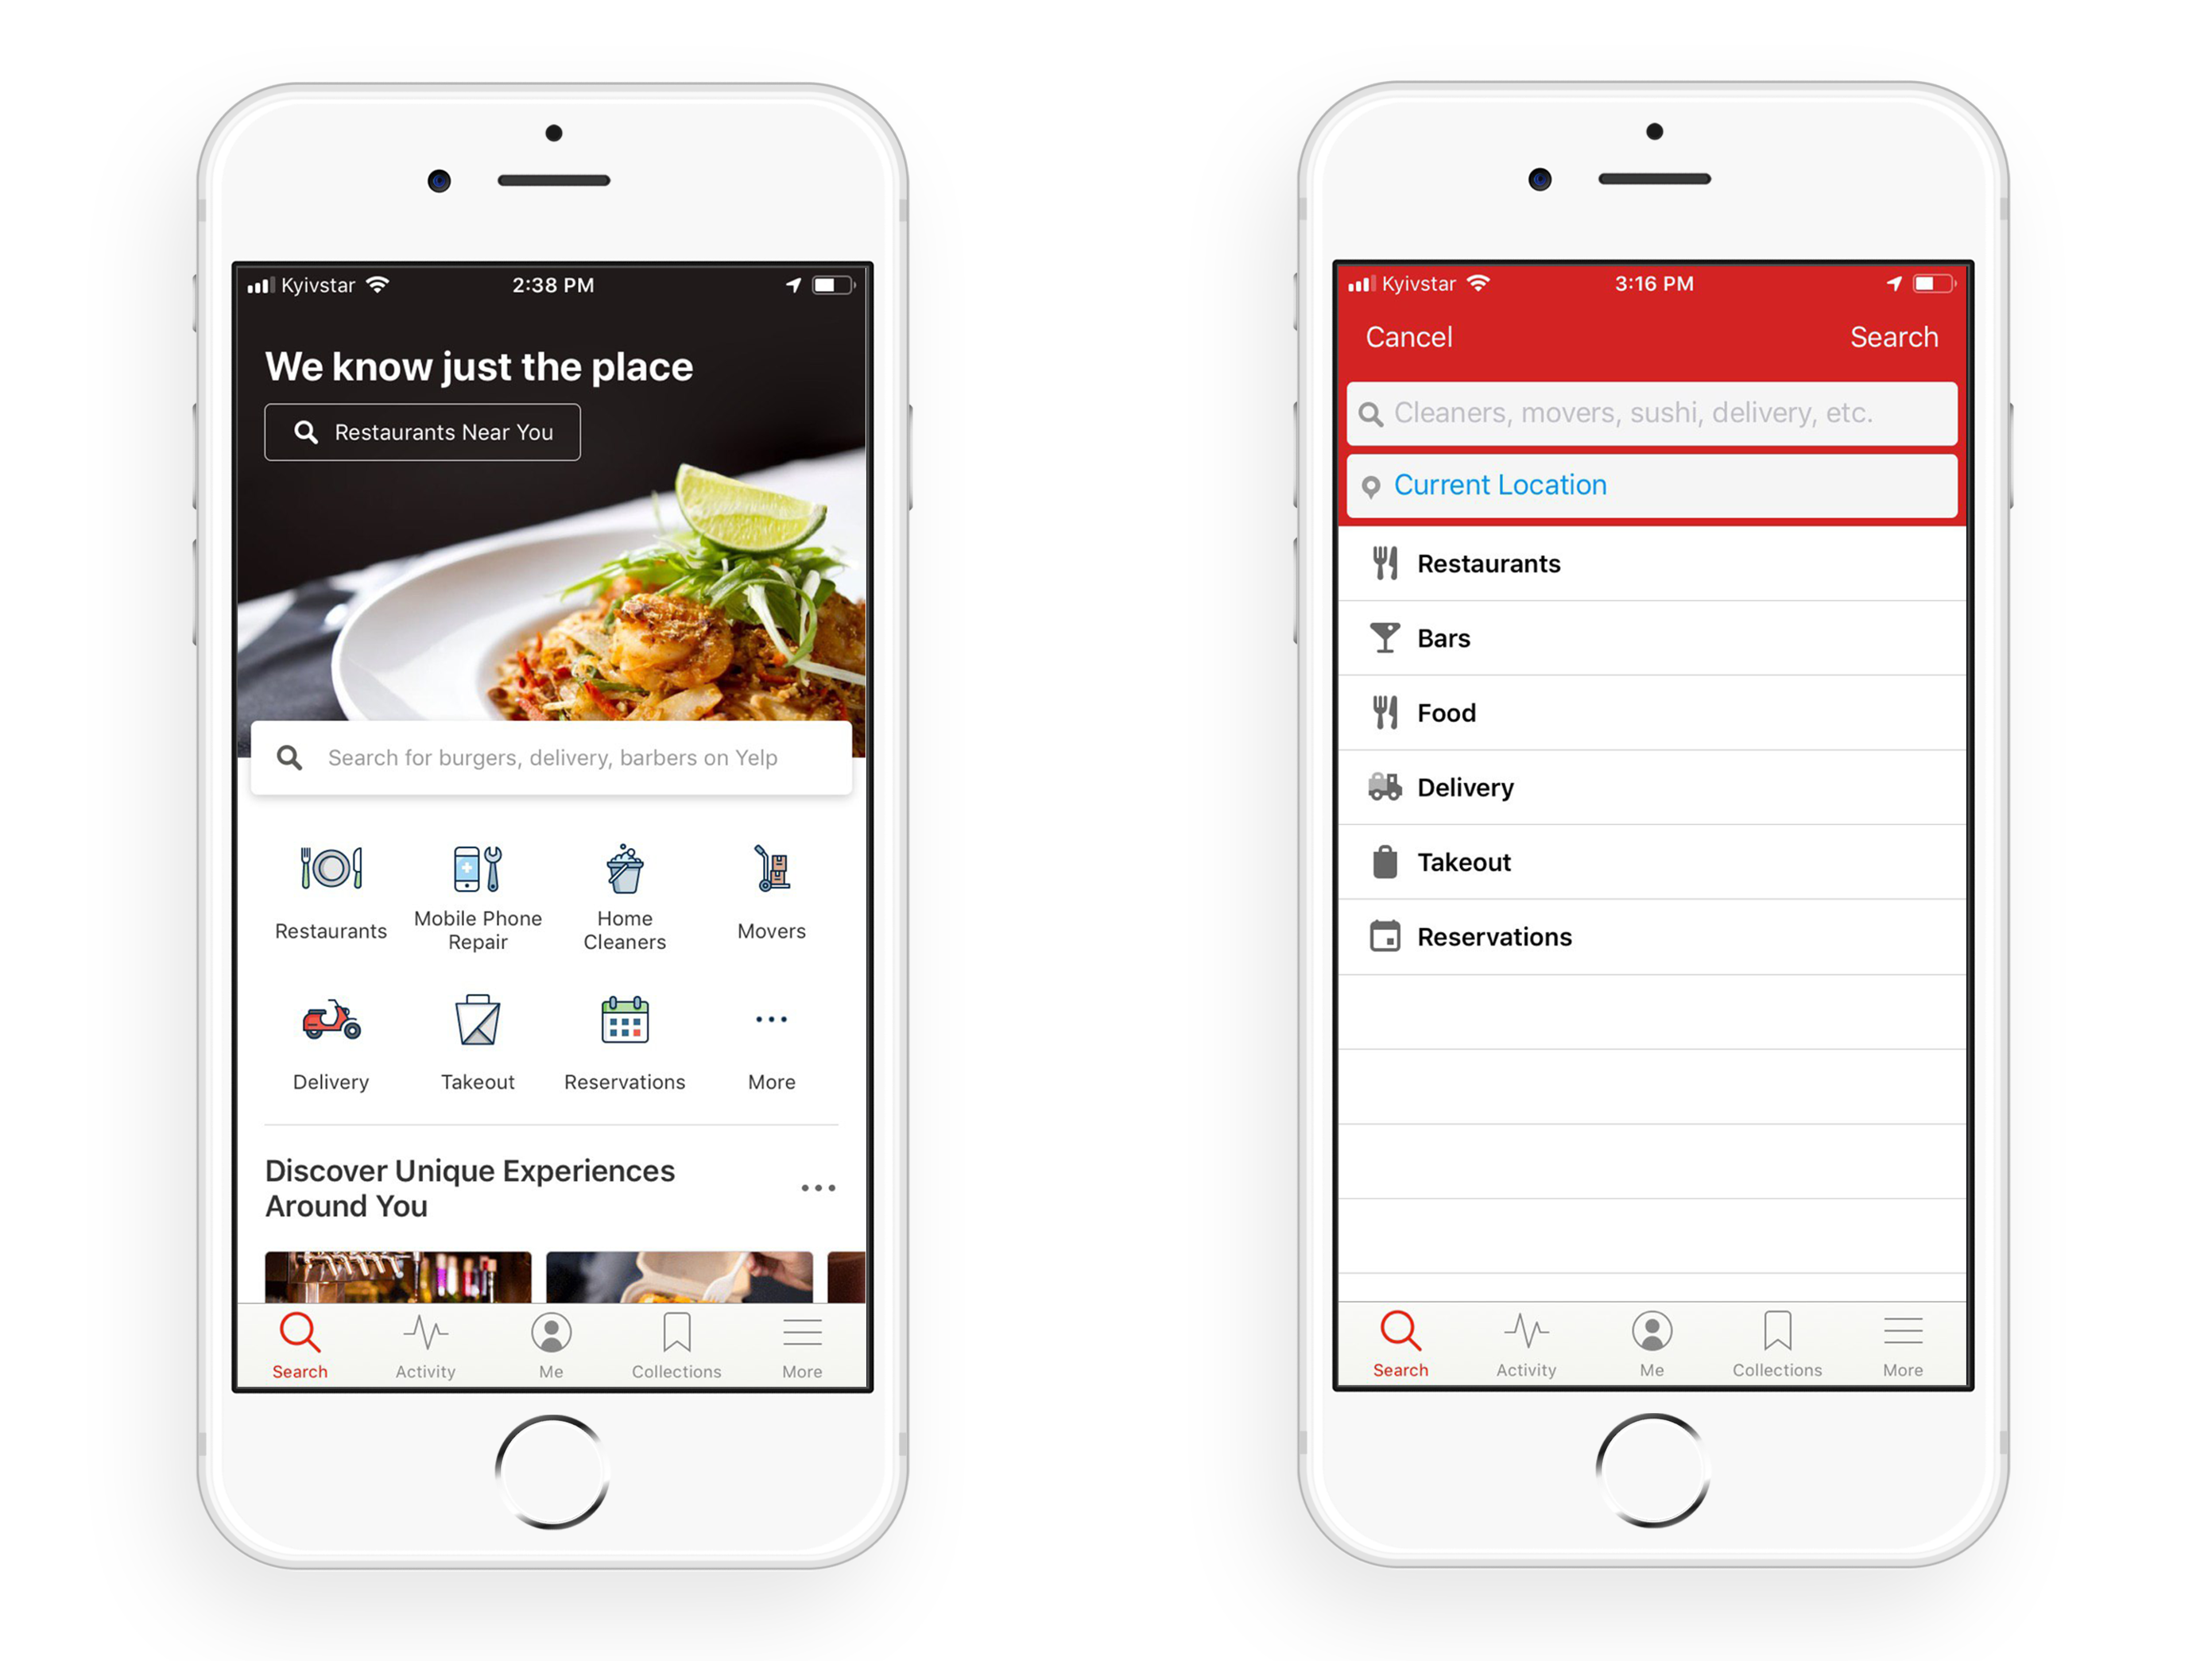 how to create an app like Yelp